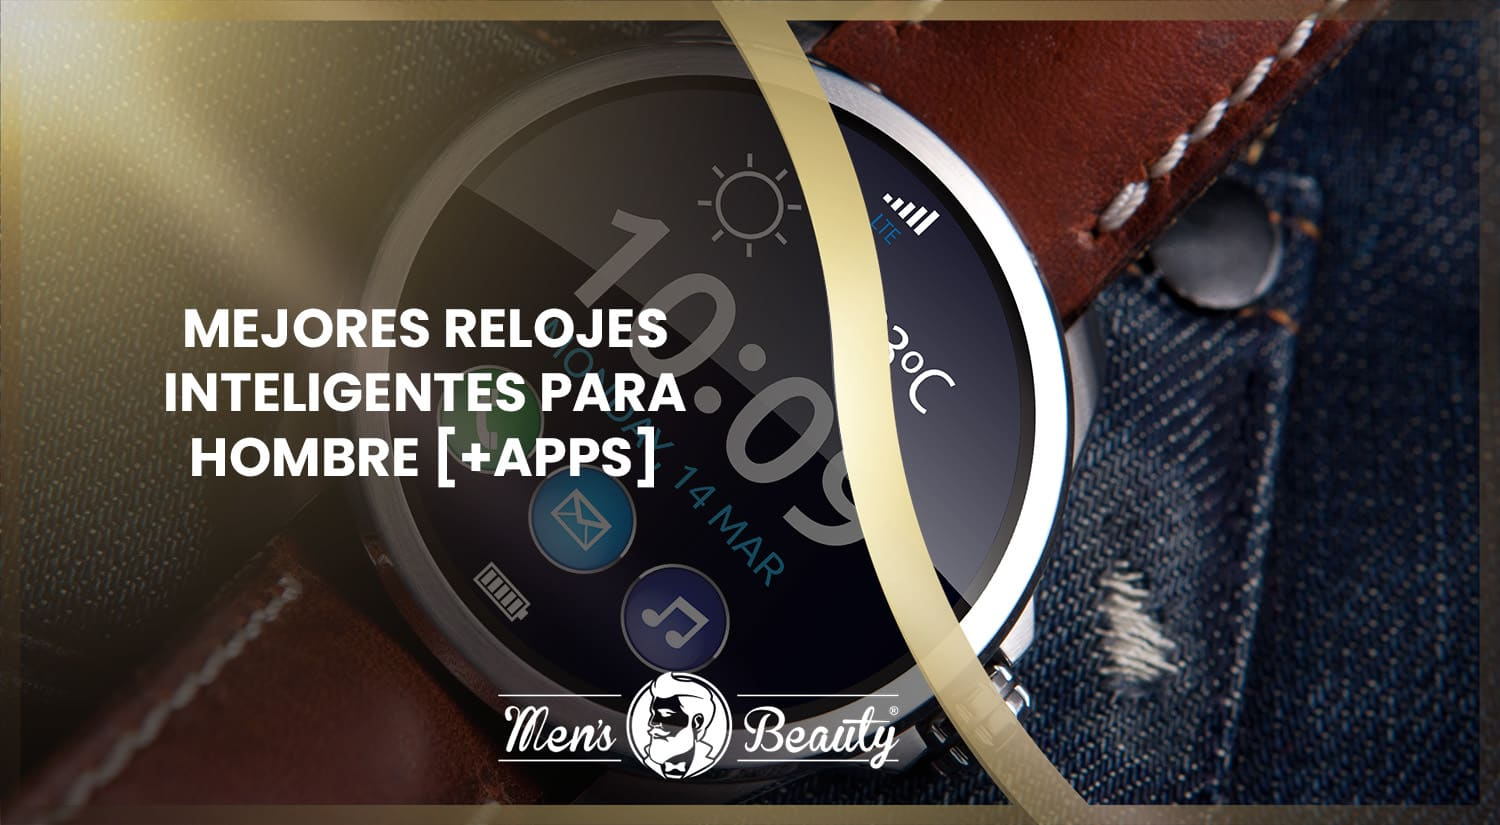 mejores relojes inteligentes hombre smartwatch masculino apps android ios